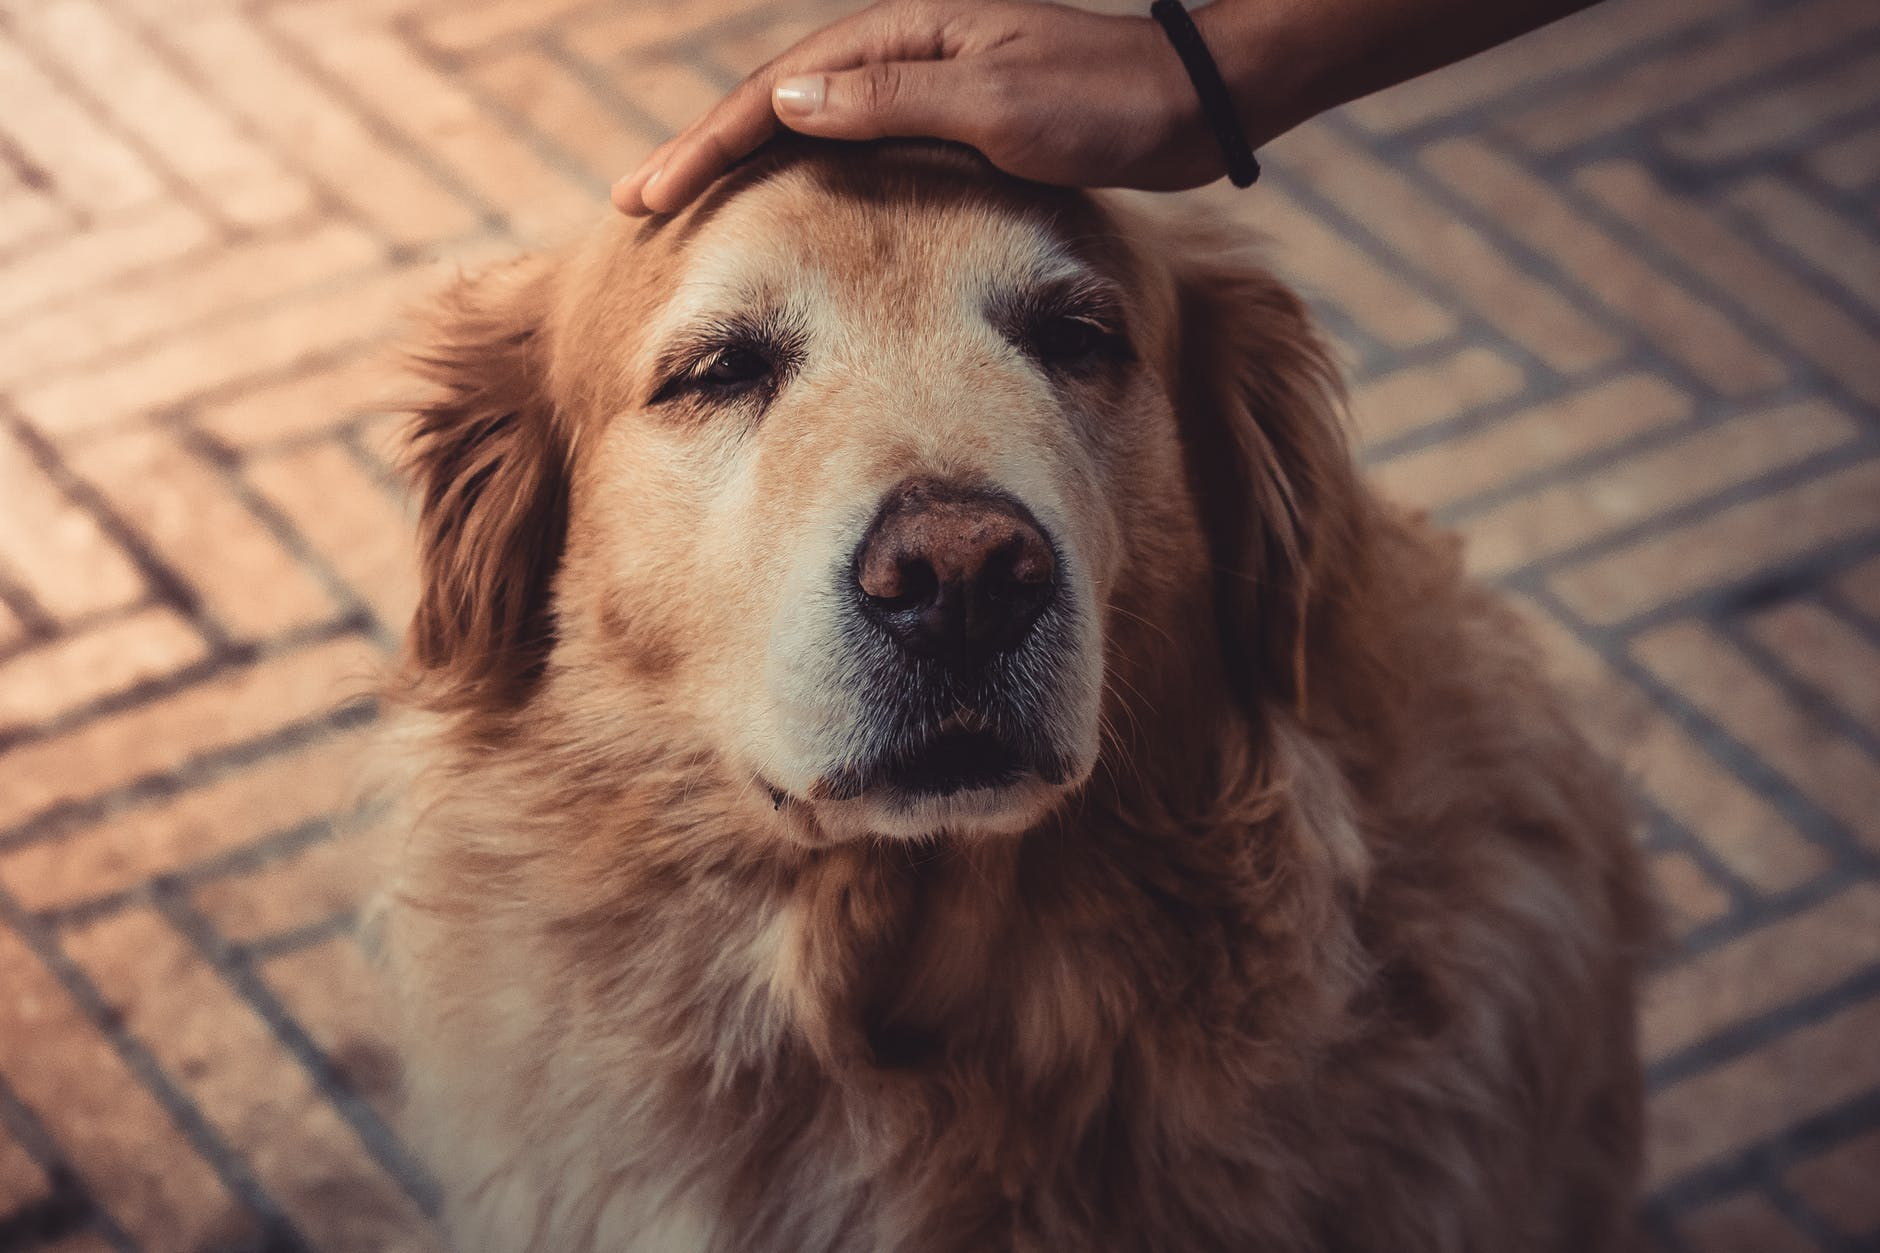 Spaying Golden Retrievers and Cancer